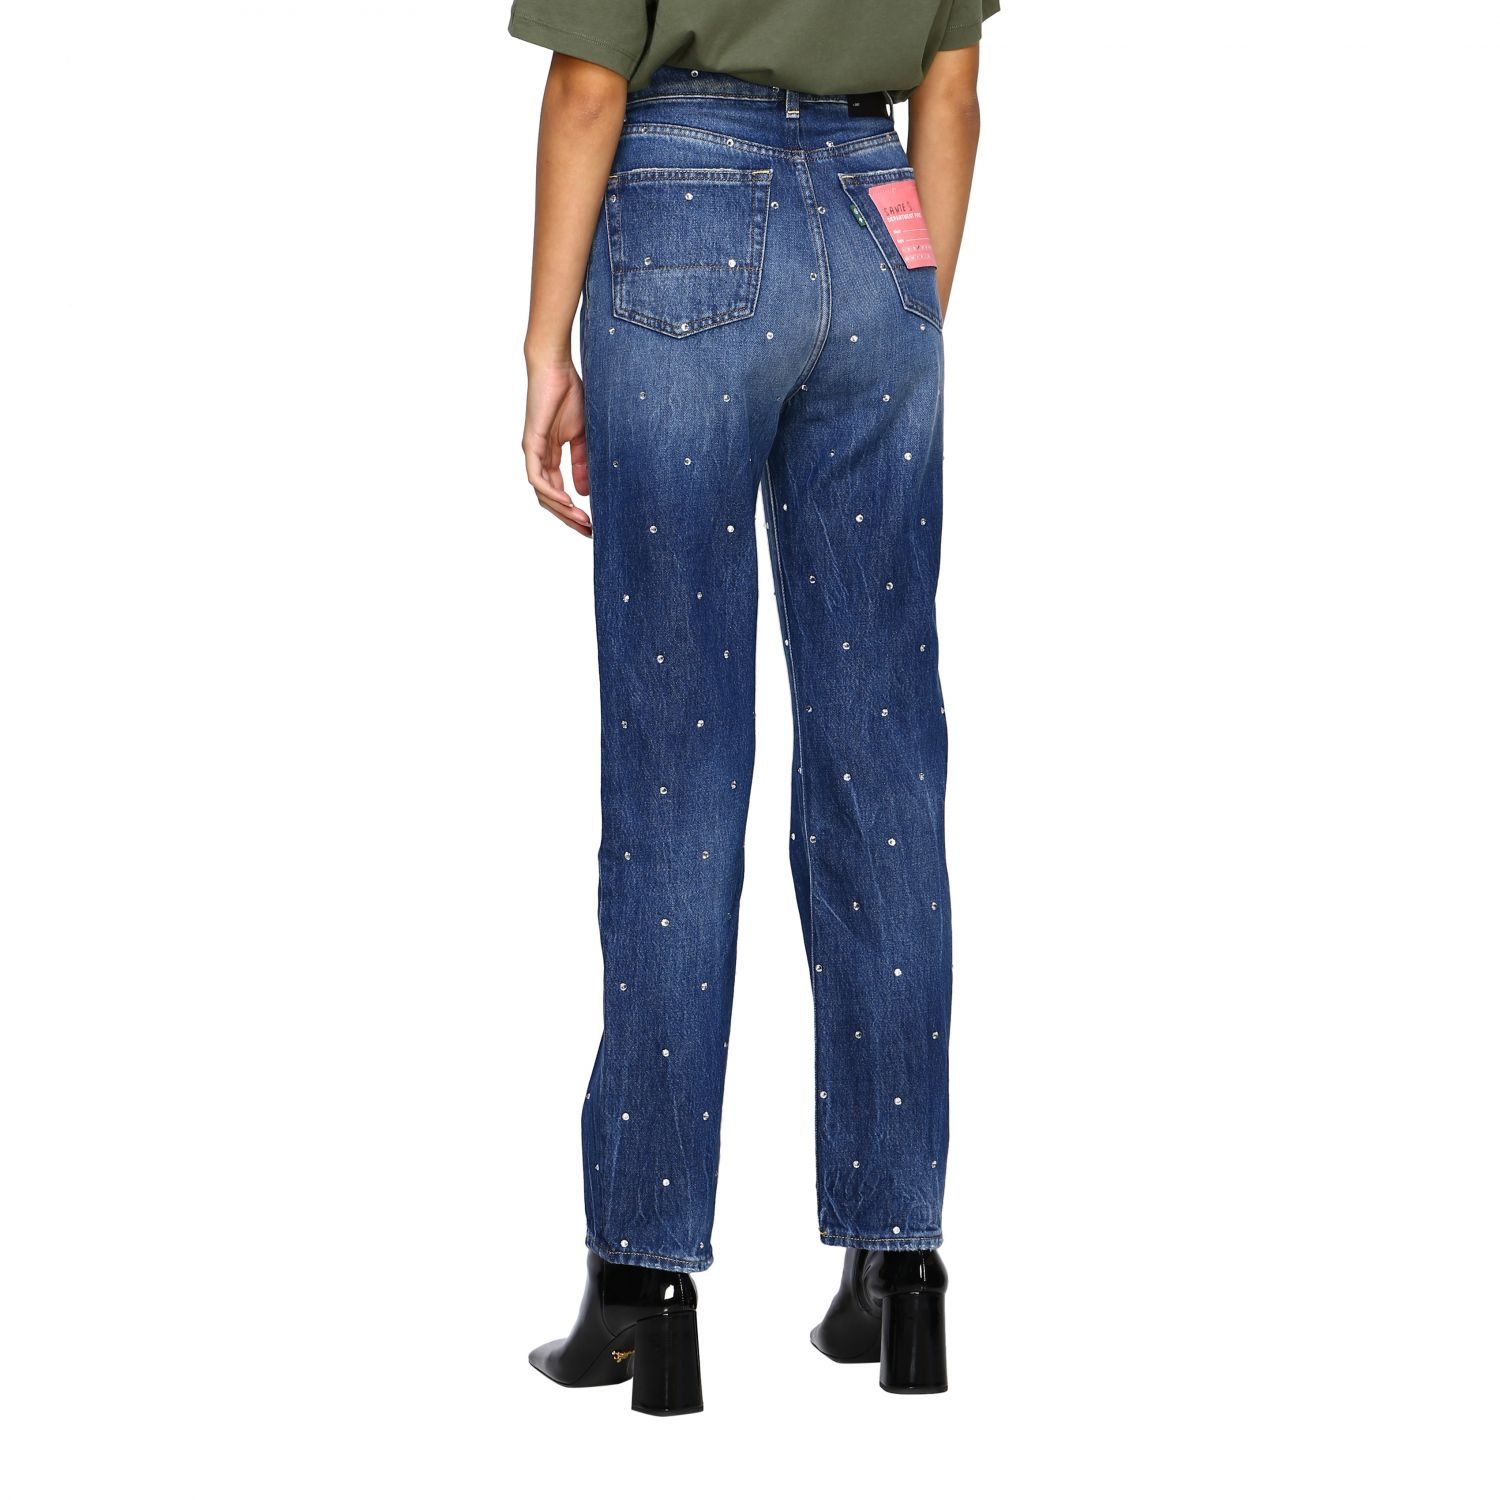 Jeans women Department 5 blue 3